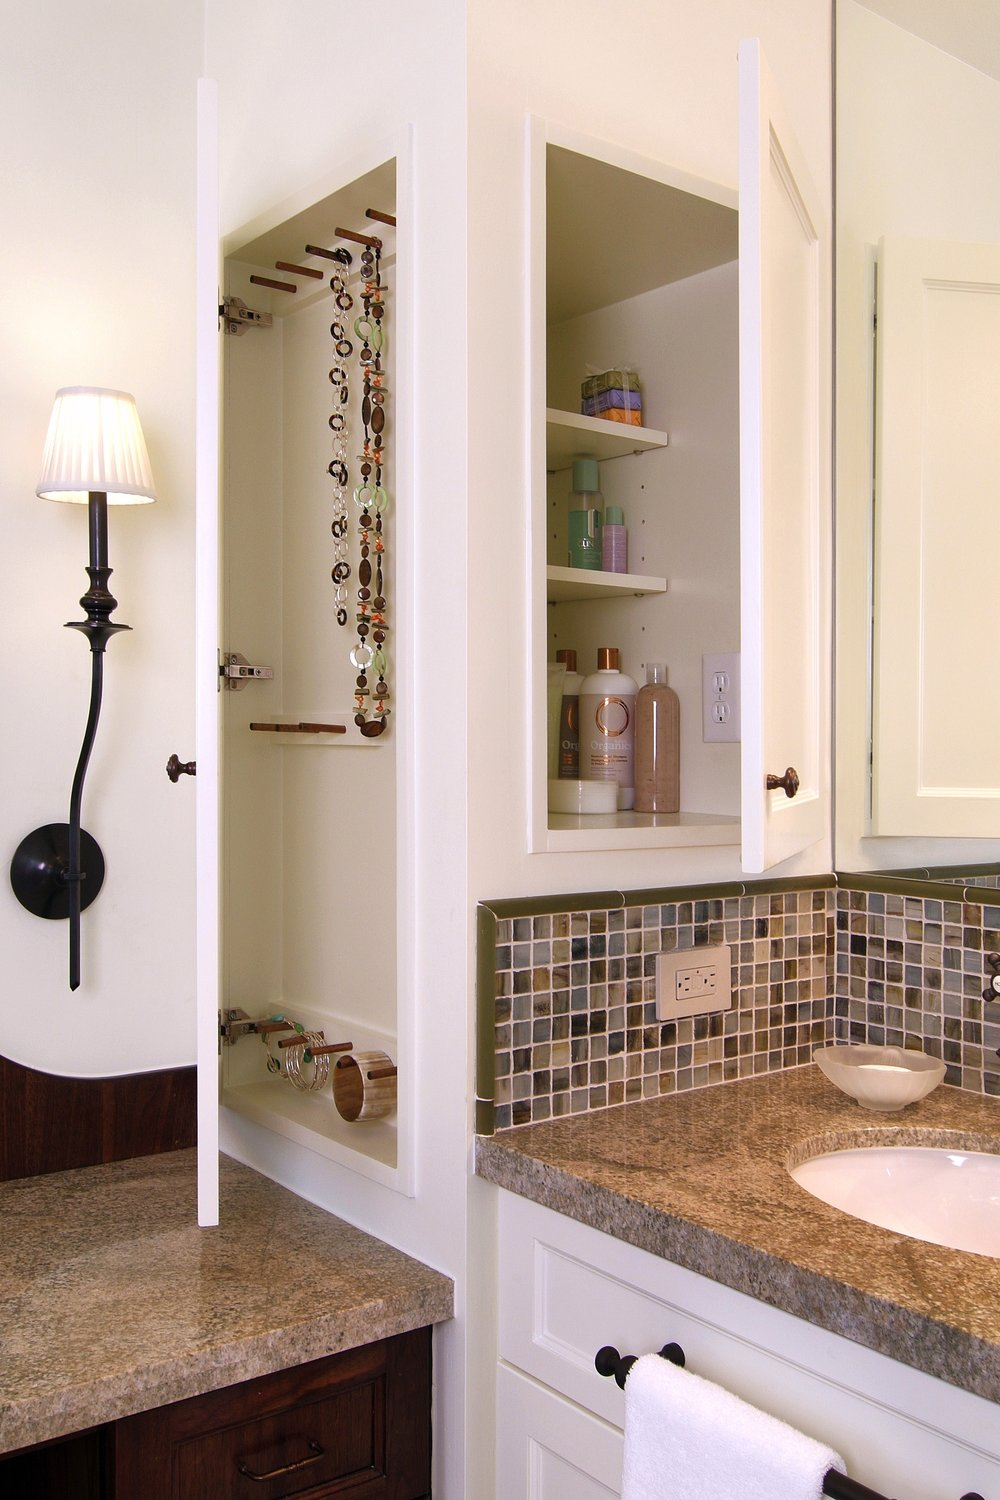 Beautiful Electrical outlet inside medicine cabinet in bathroom